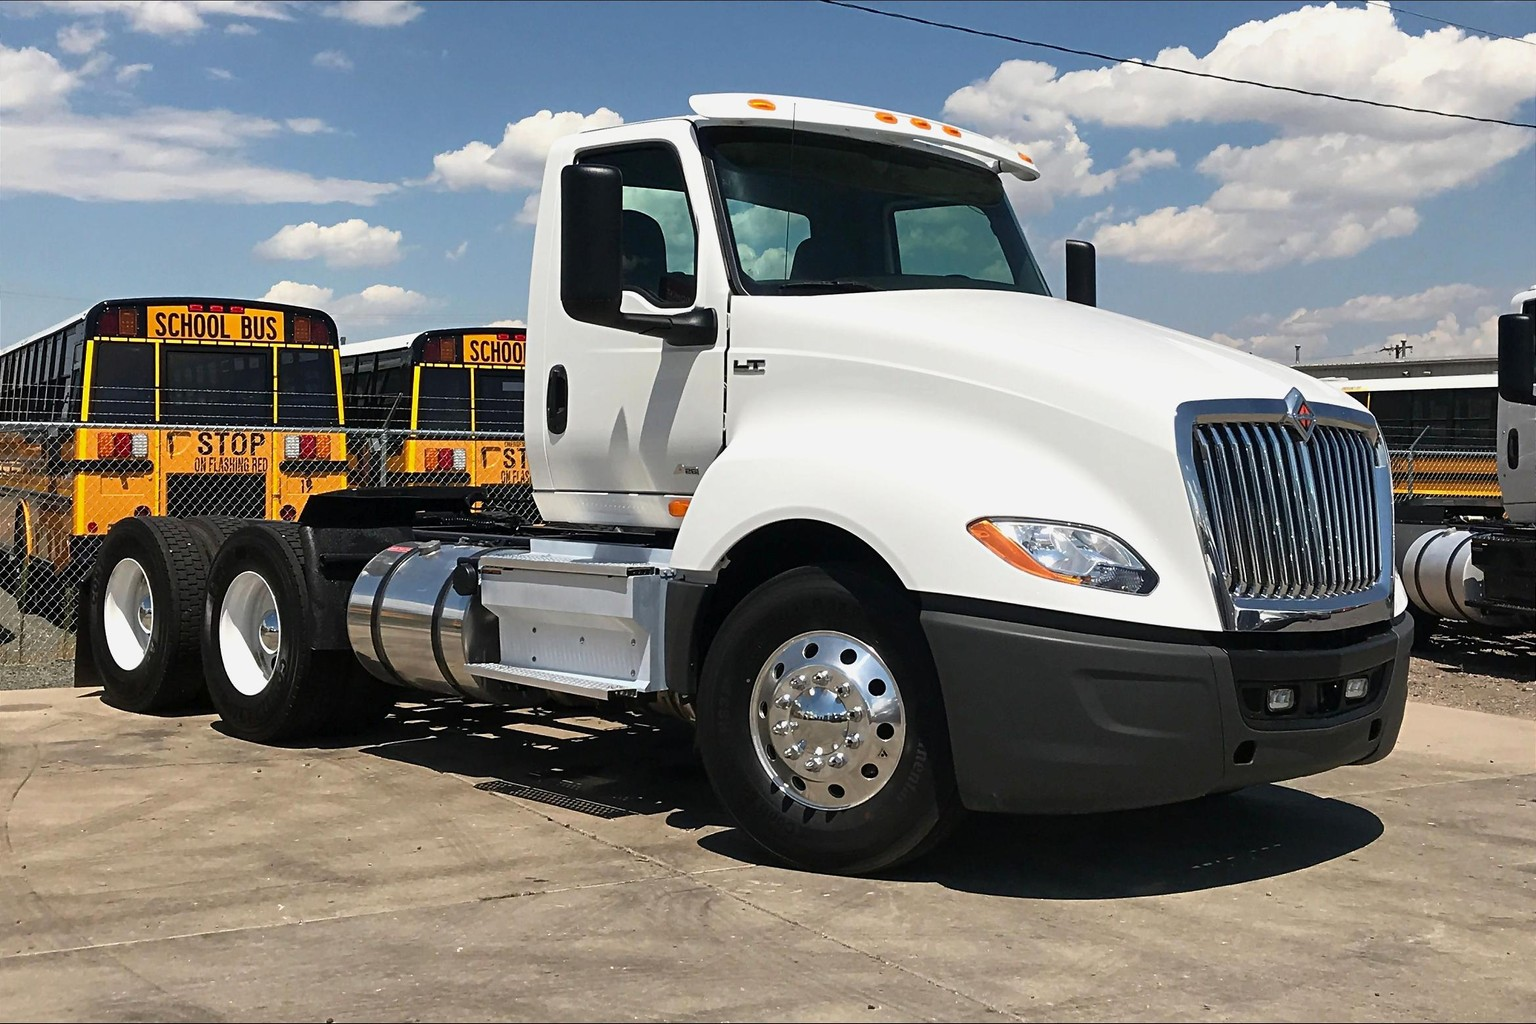 2018 International LT625 6x4